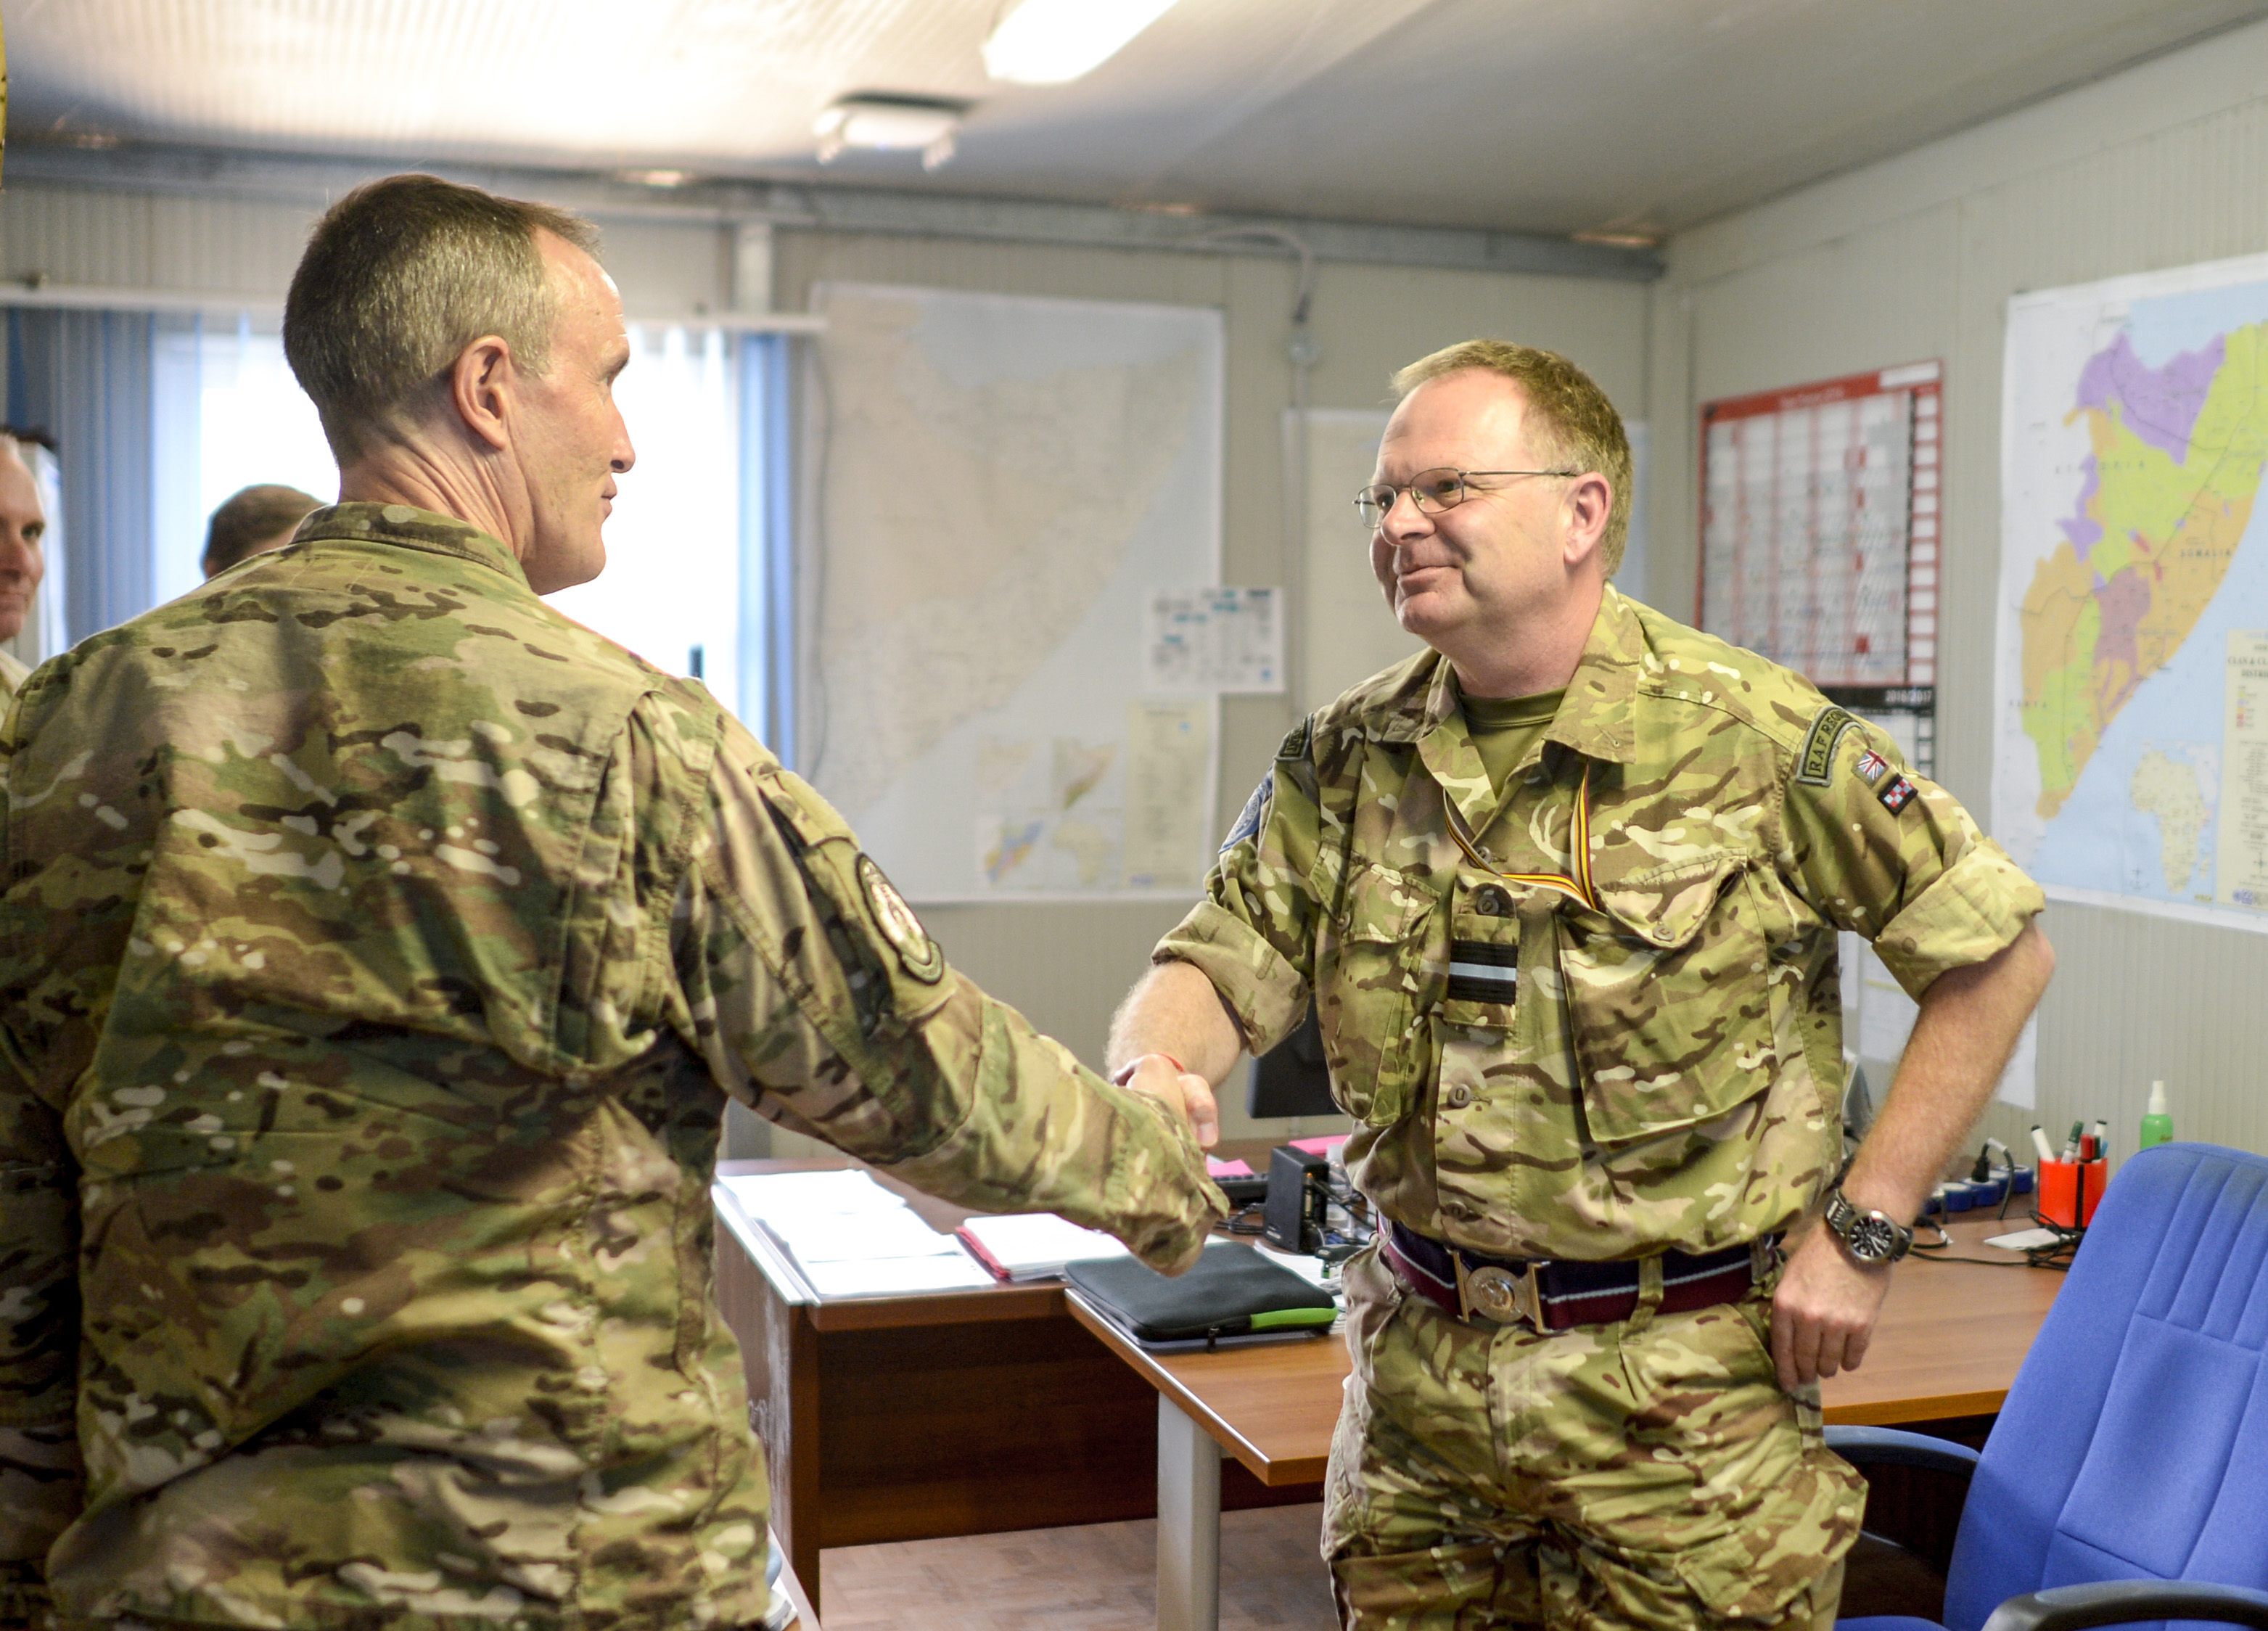 "U.S. Air Force Brig. Gen. Phil Purcell, Combined Joint Task Force-Horn of Africa deputy commander, meets with British Air Commodore William ""Jamie"" Kendall, United Nations Somalia senior military advisor, in Mogadishu, Somalia Mar. 15, 2017. The meeting helped relay important information about the dynamics of the region back to the U.S. government to further stabilize Somalia. (U.S. Air National Guard photo by Christian M. Jadot)"